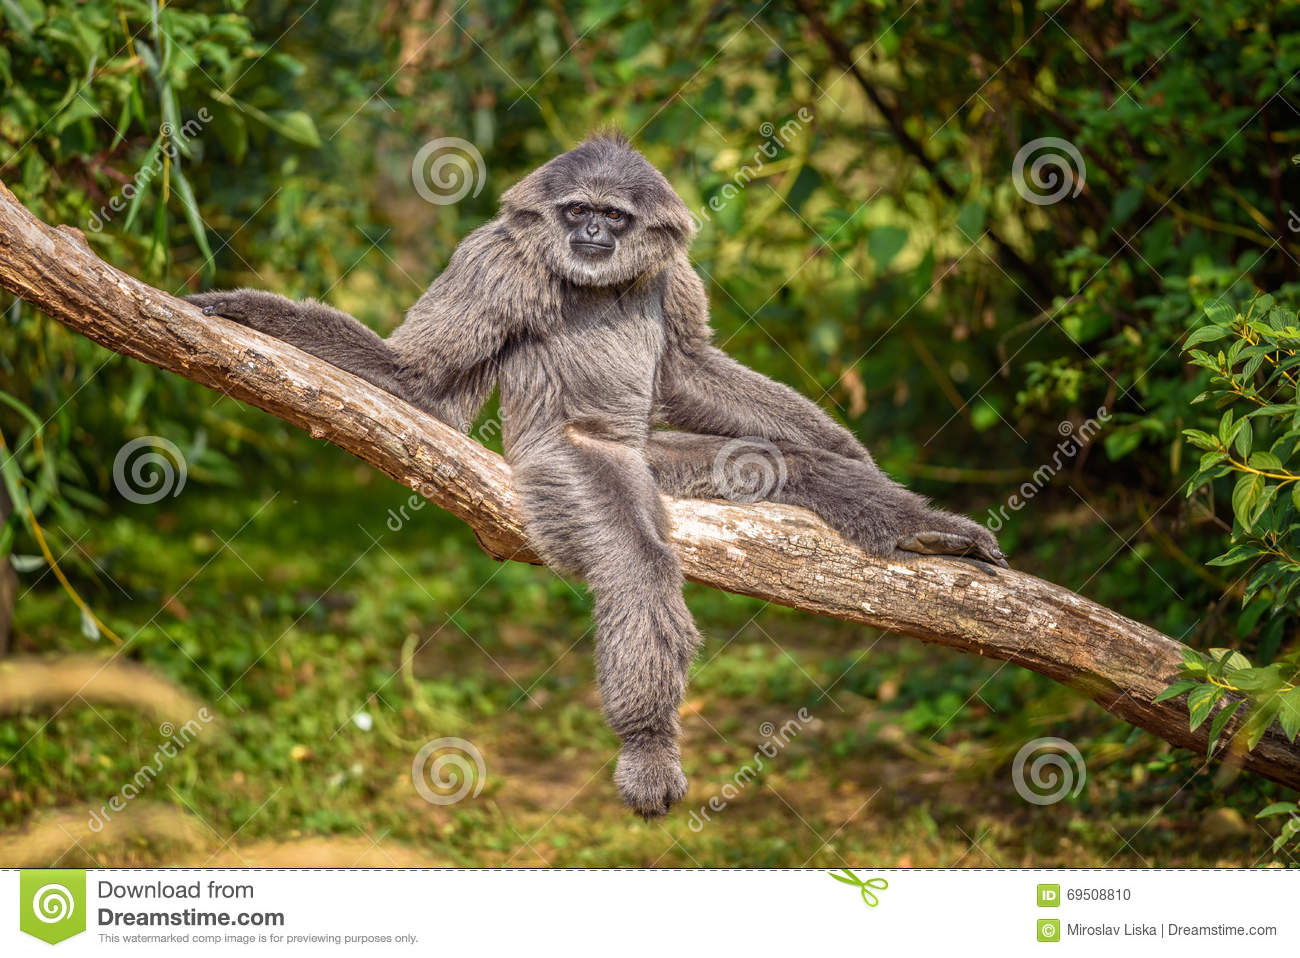 Silvery gibbon hylobates moloch sitting on a branch the silvery gibbon ranks among the most threatened species